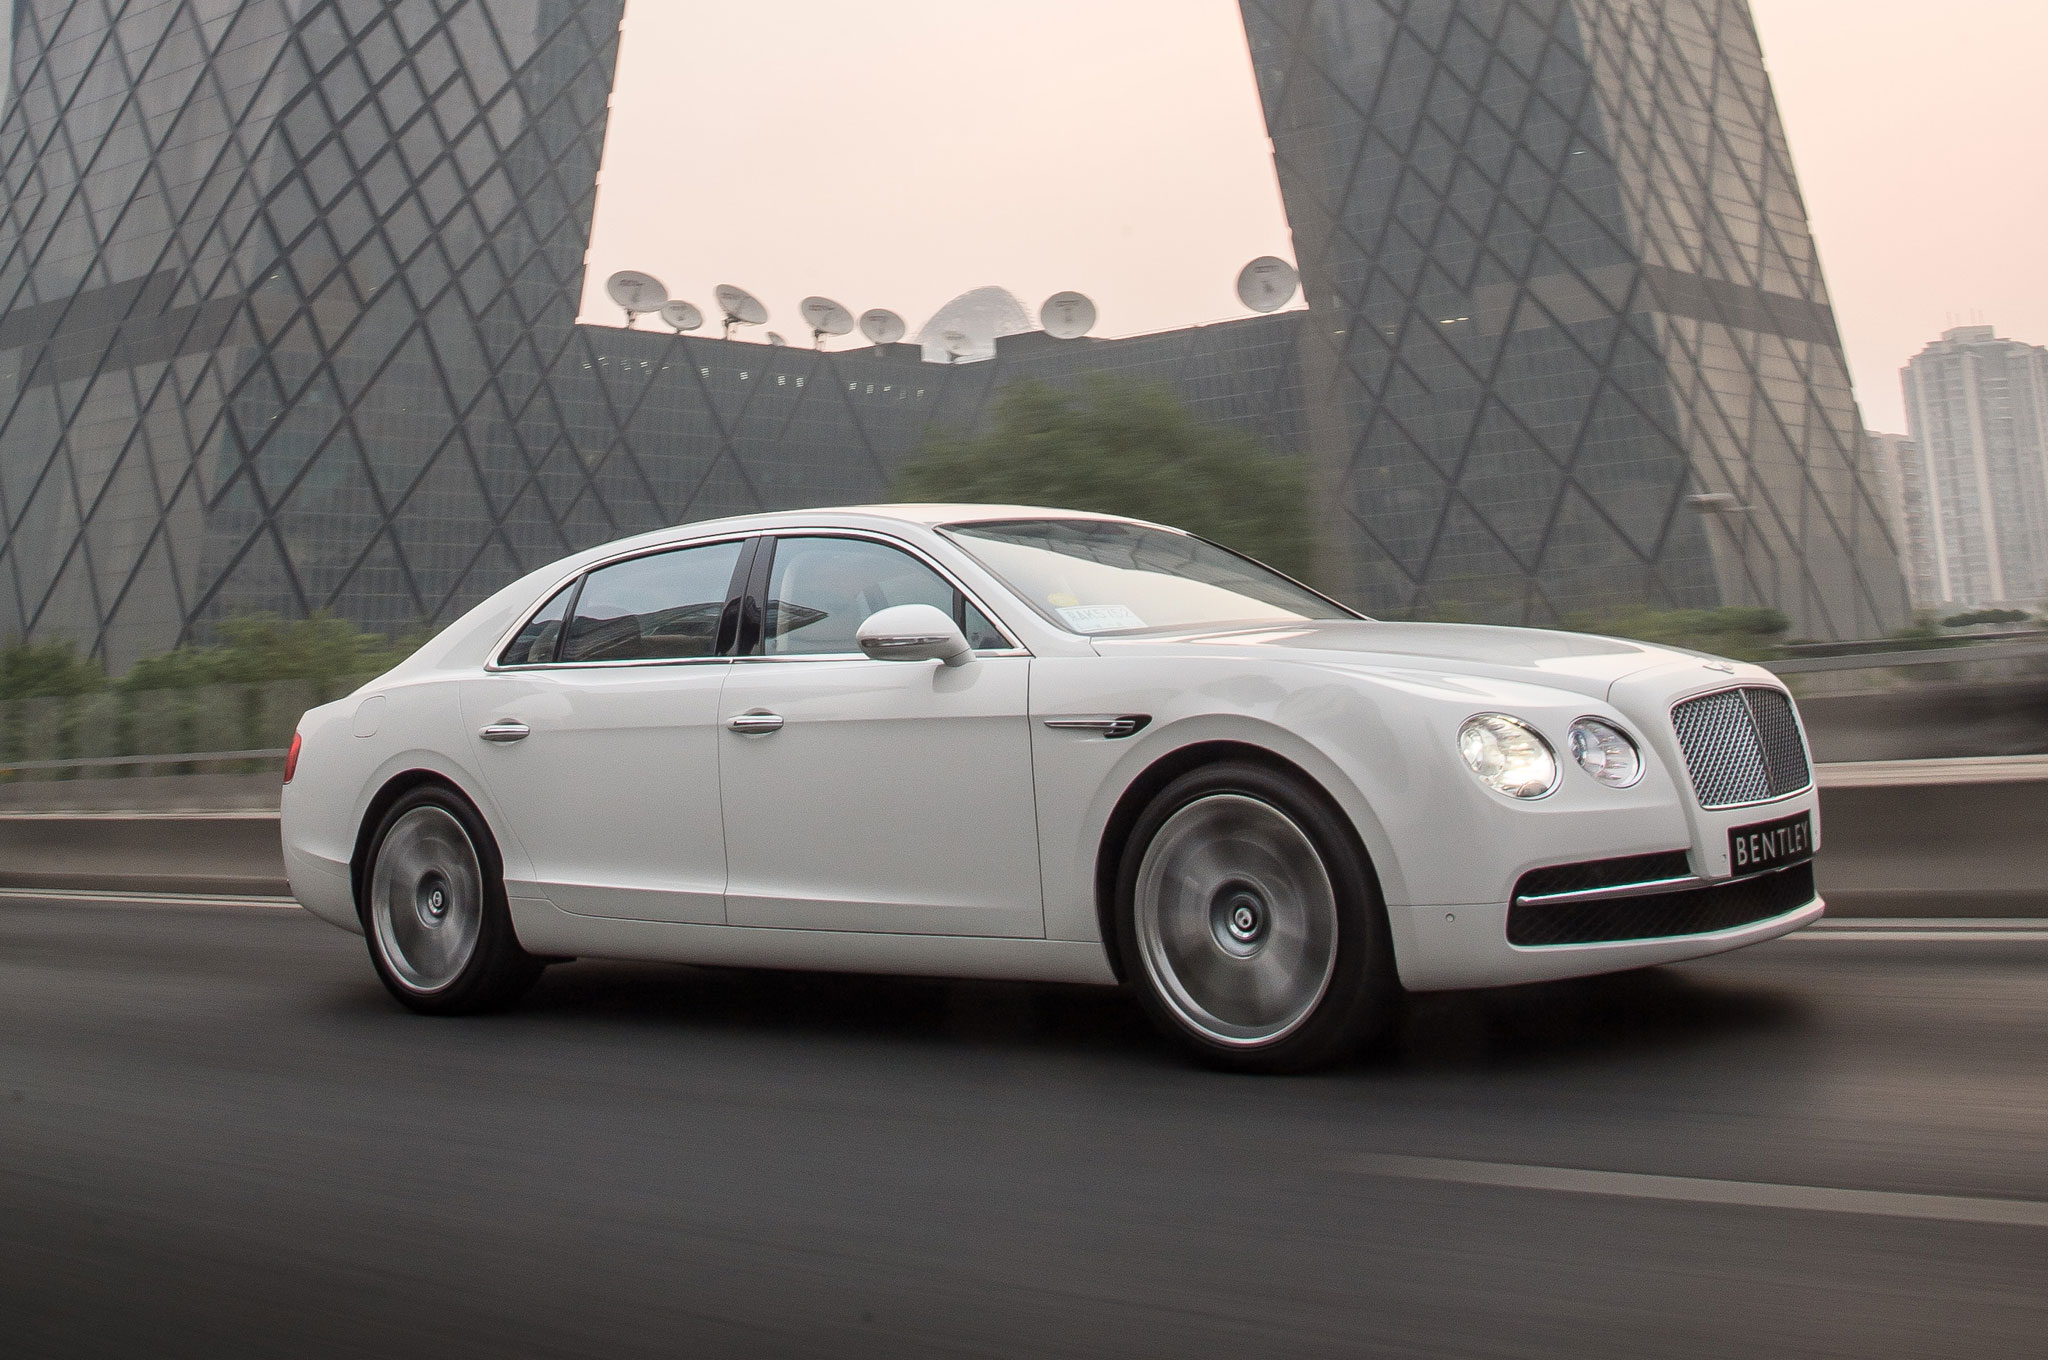 supersports inspirational price of elegant cars continental awesome to cost image bentley